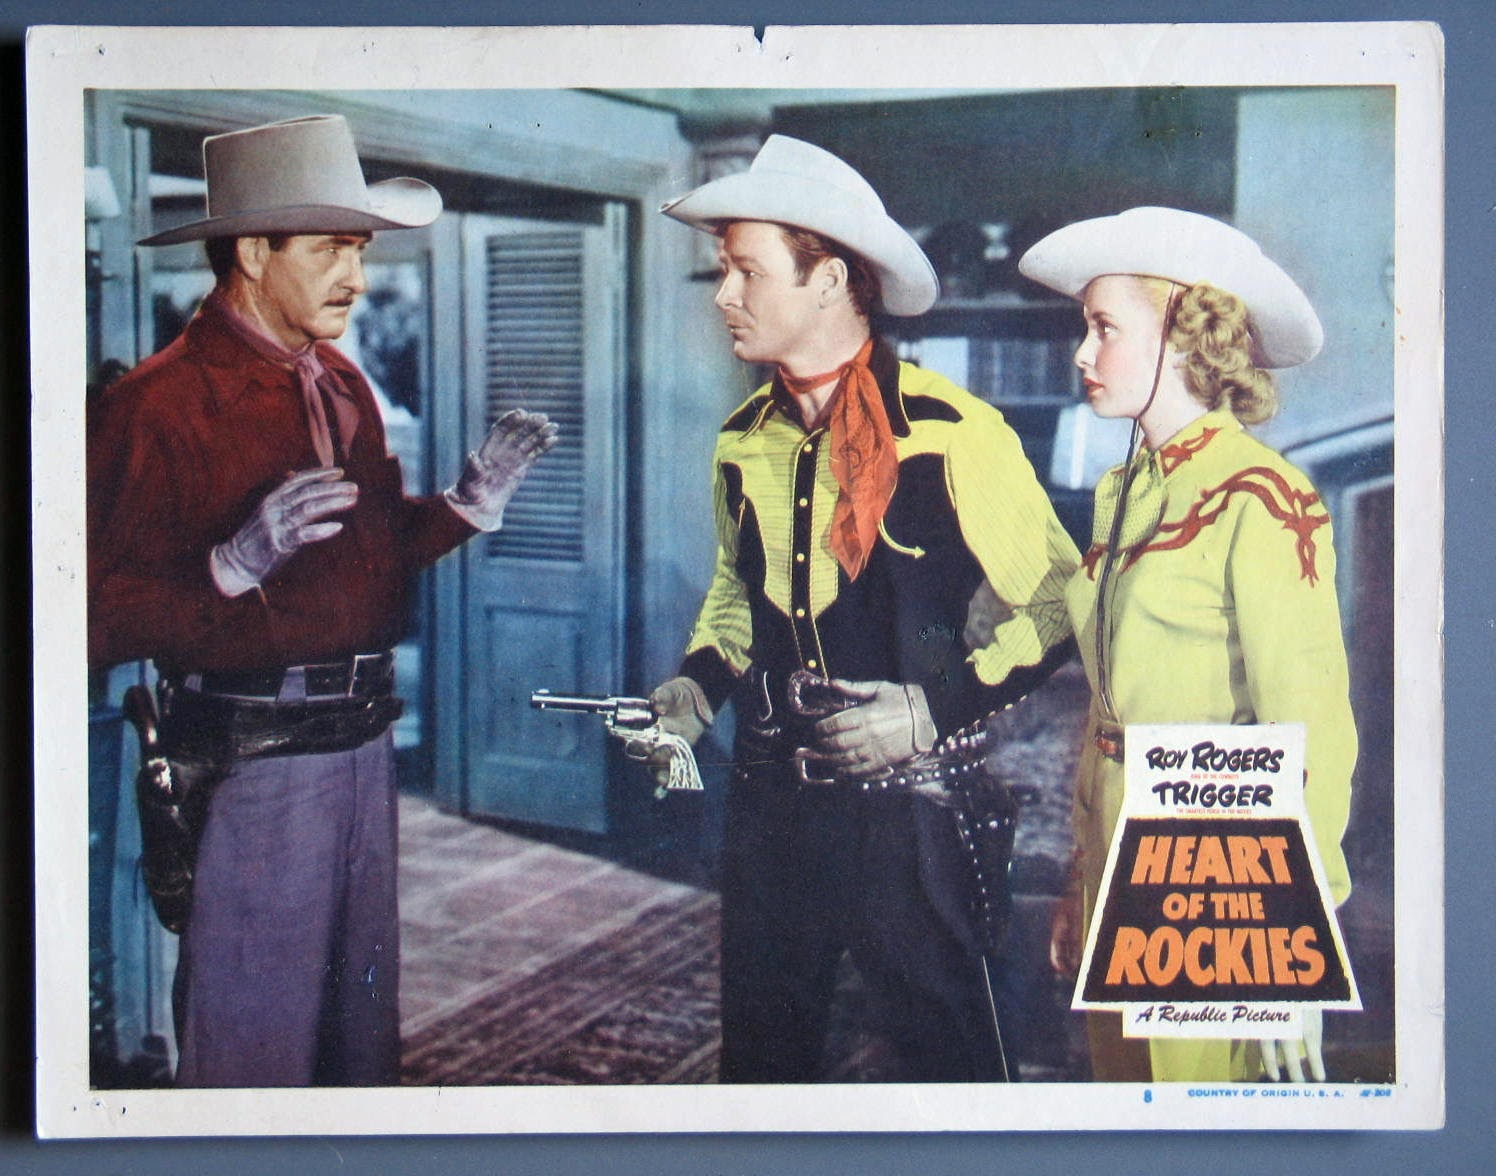 roy rogers-heart of the rockies.